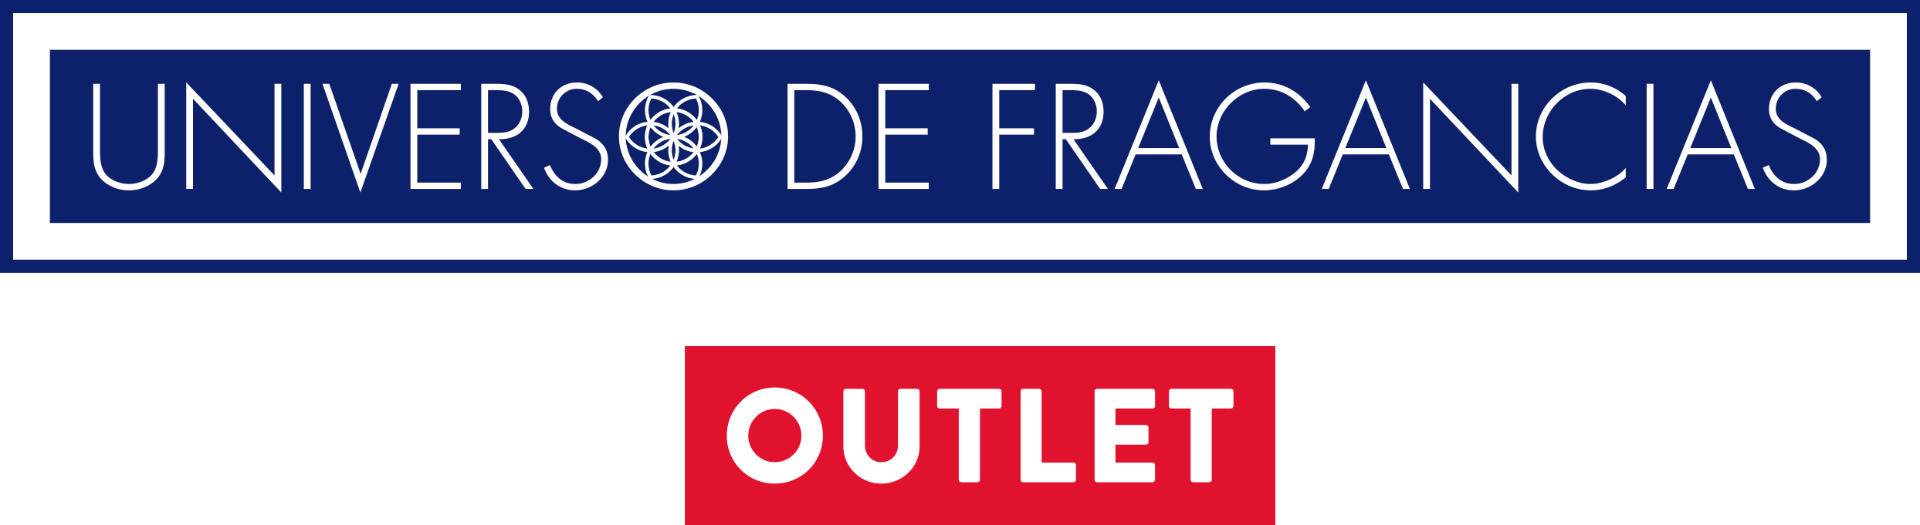 Universo de Fragancias Outlet